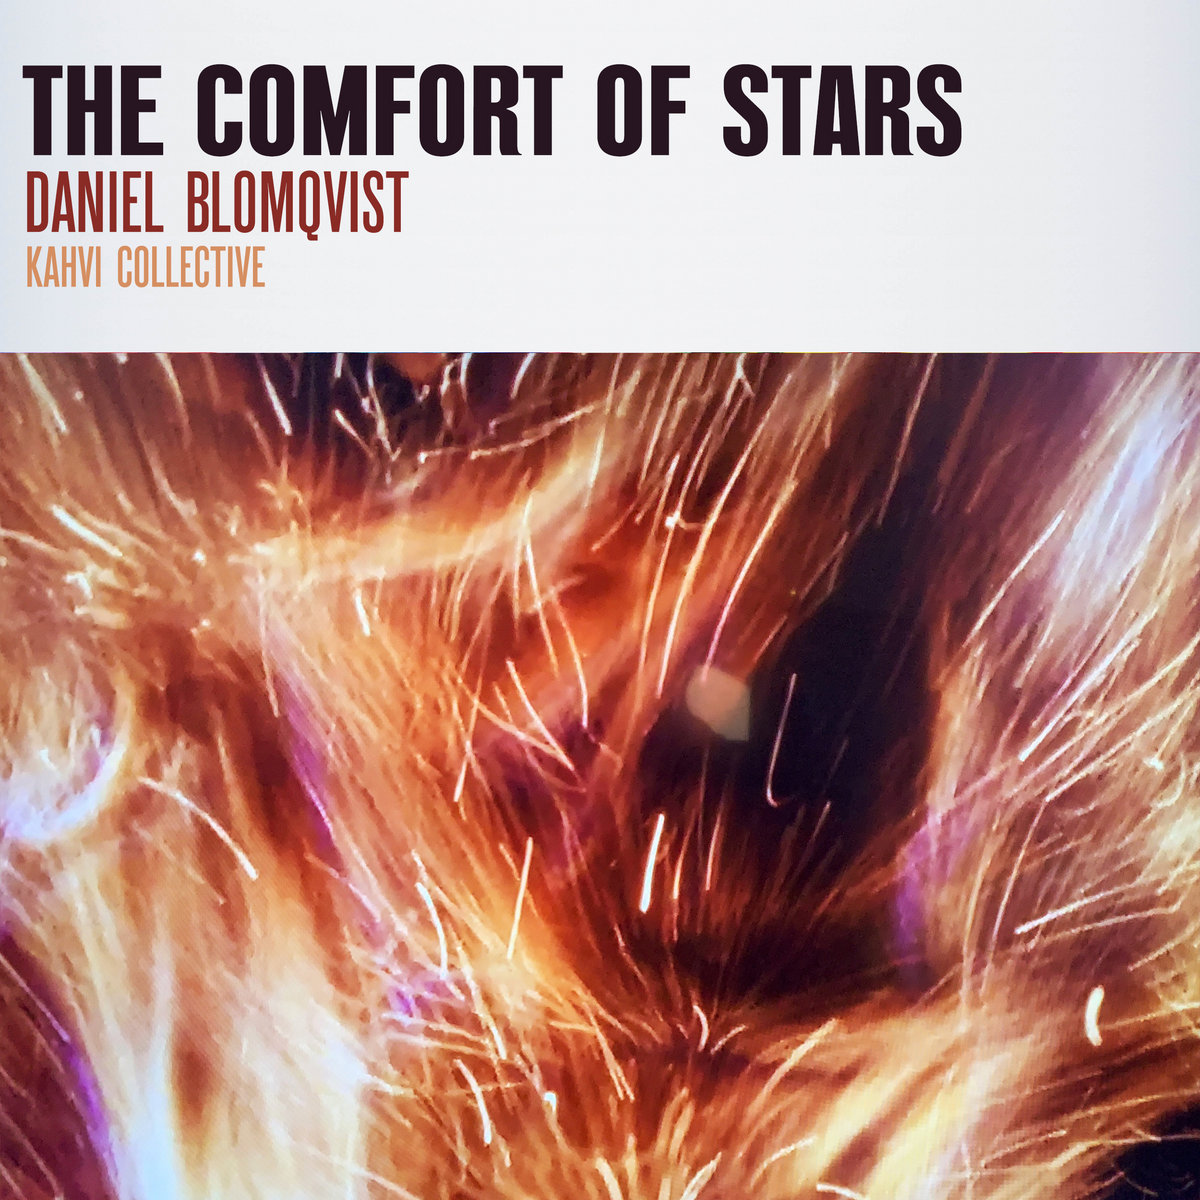 Daniel Blomqvist – The Comfort of Stars